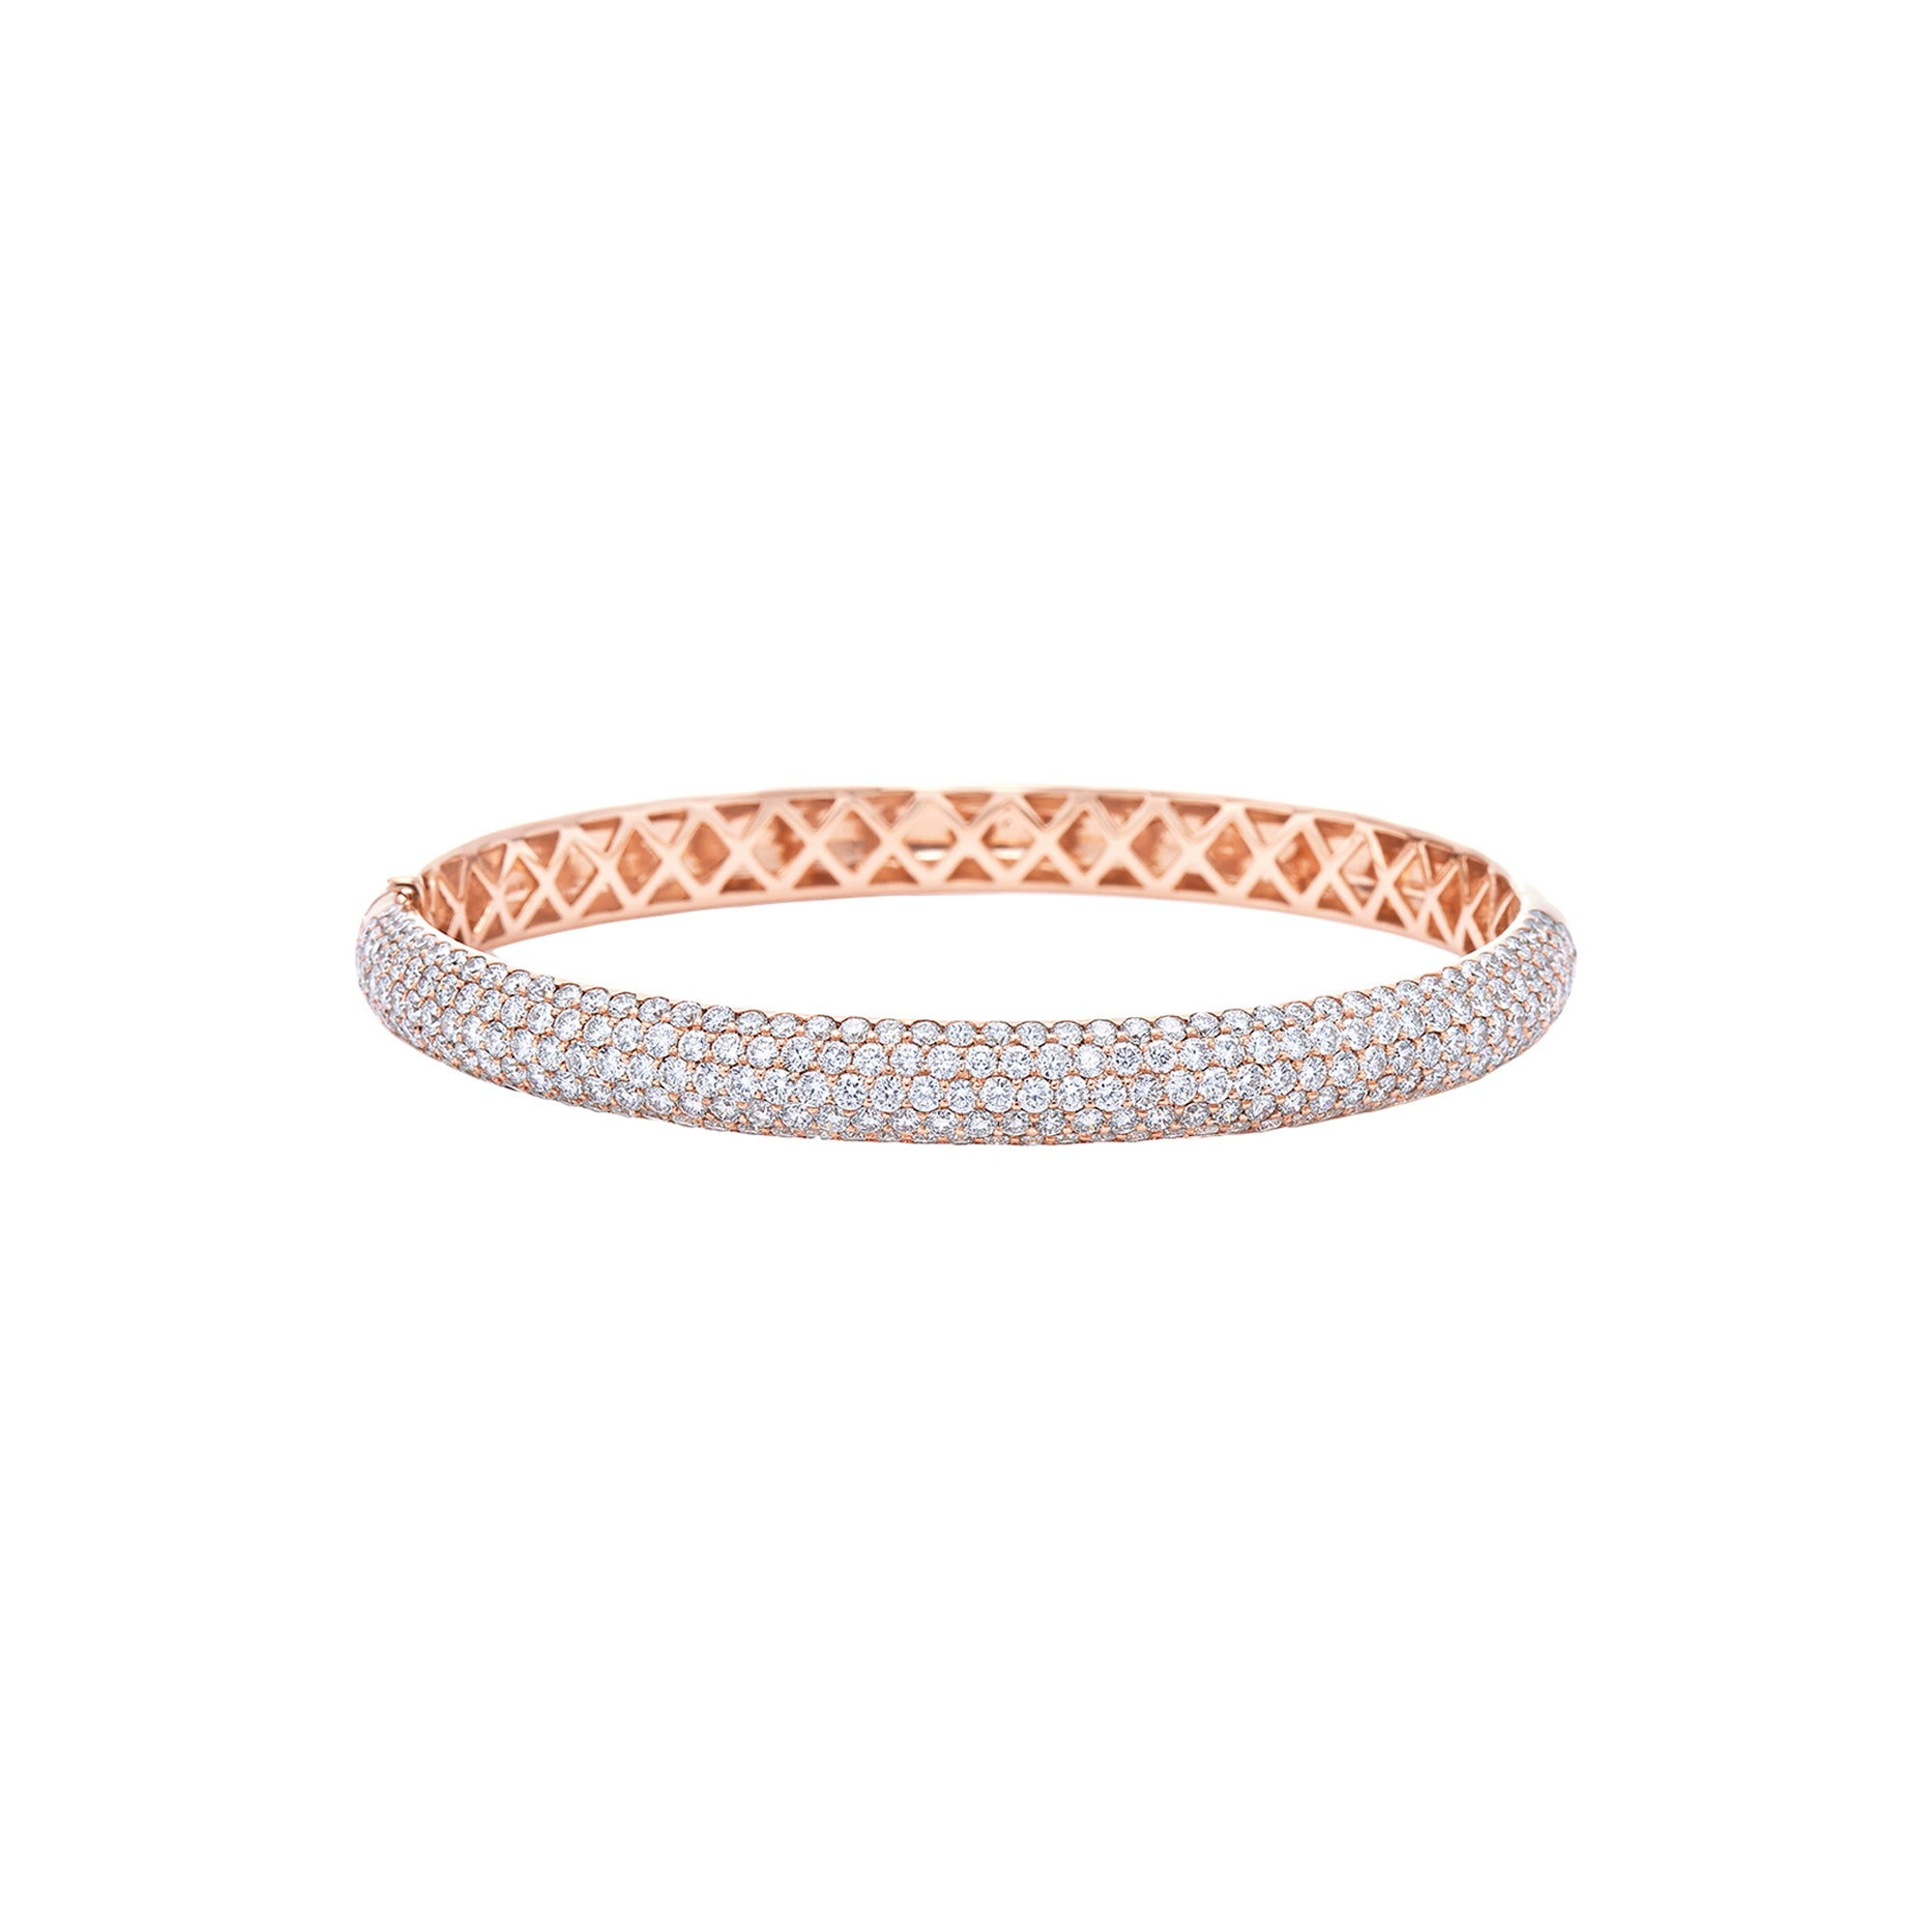 Kwiat Stackable Diamond Bracelet - Rose Gold - Bracelets - Broken English Jewelry